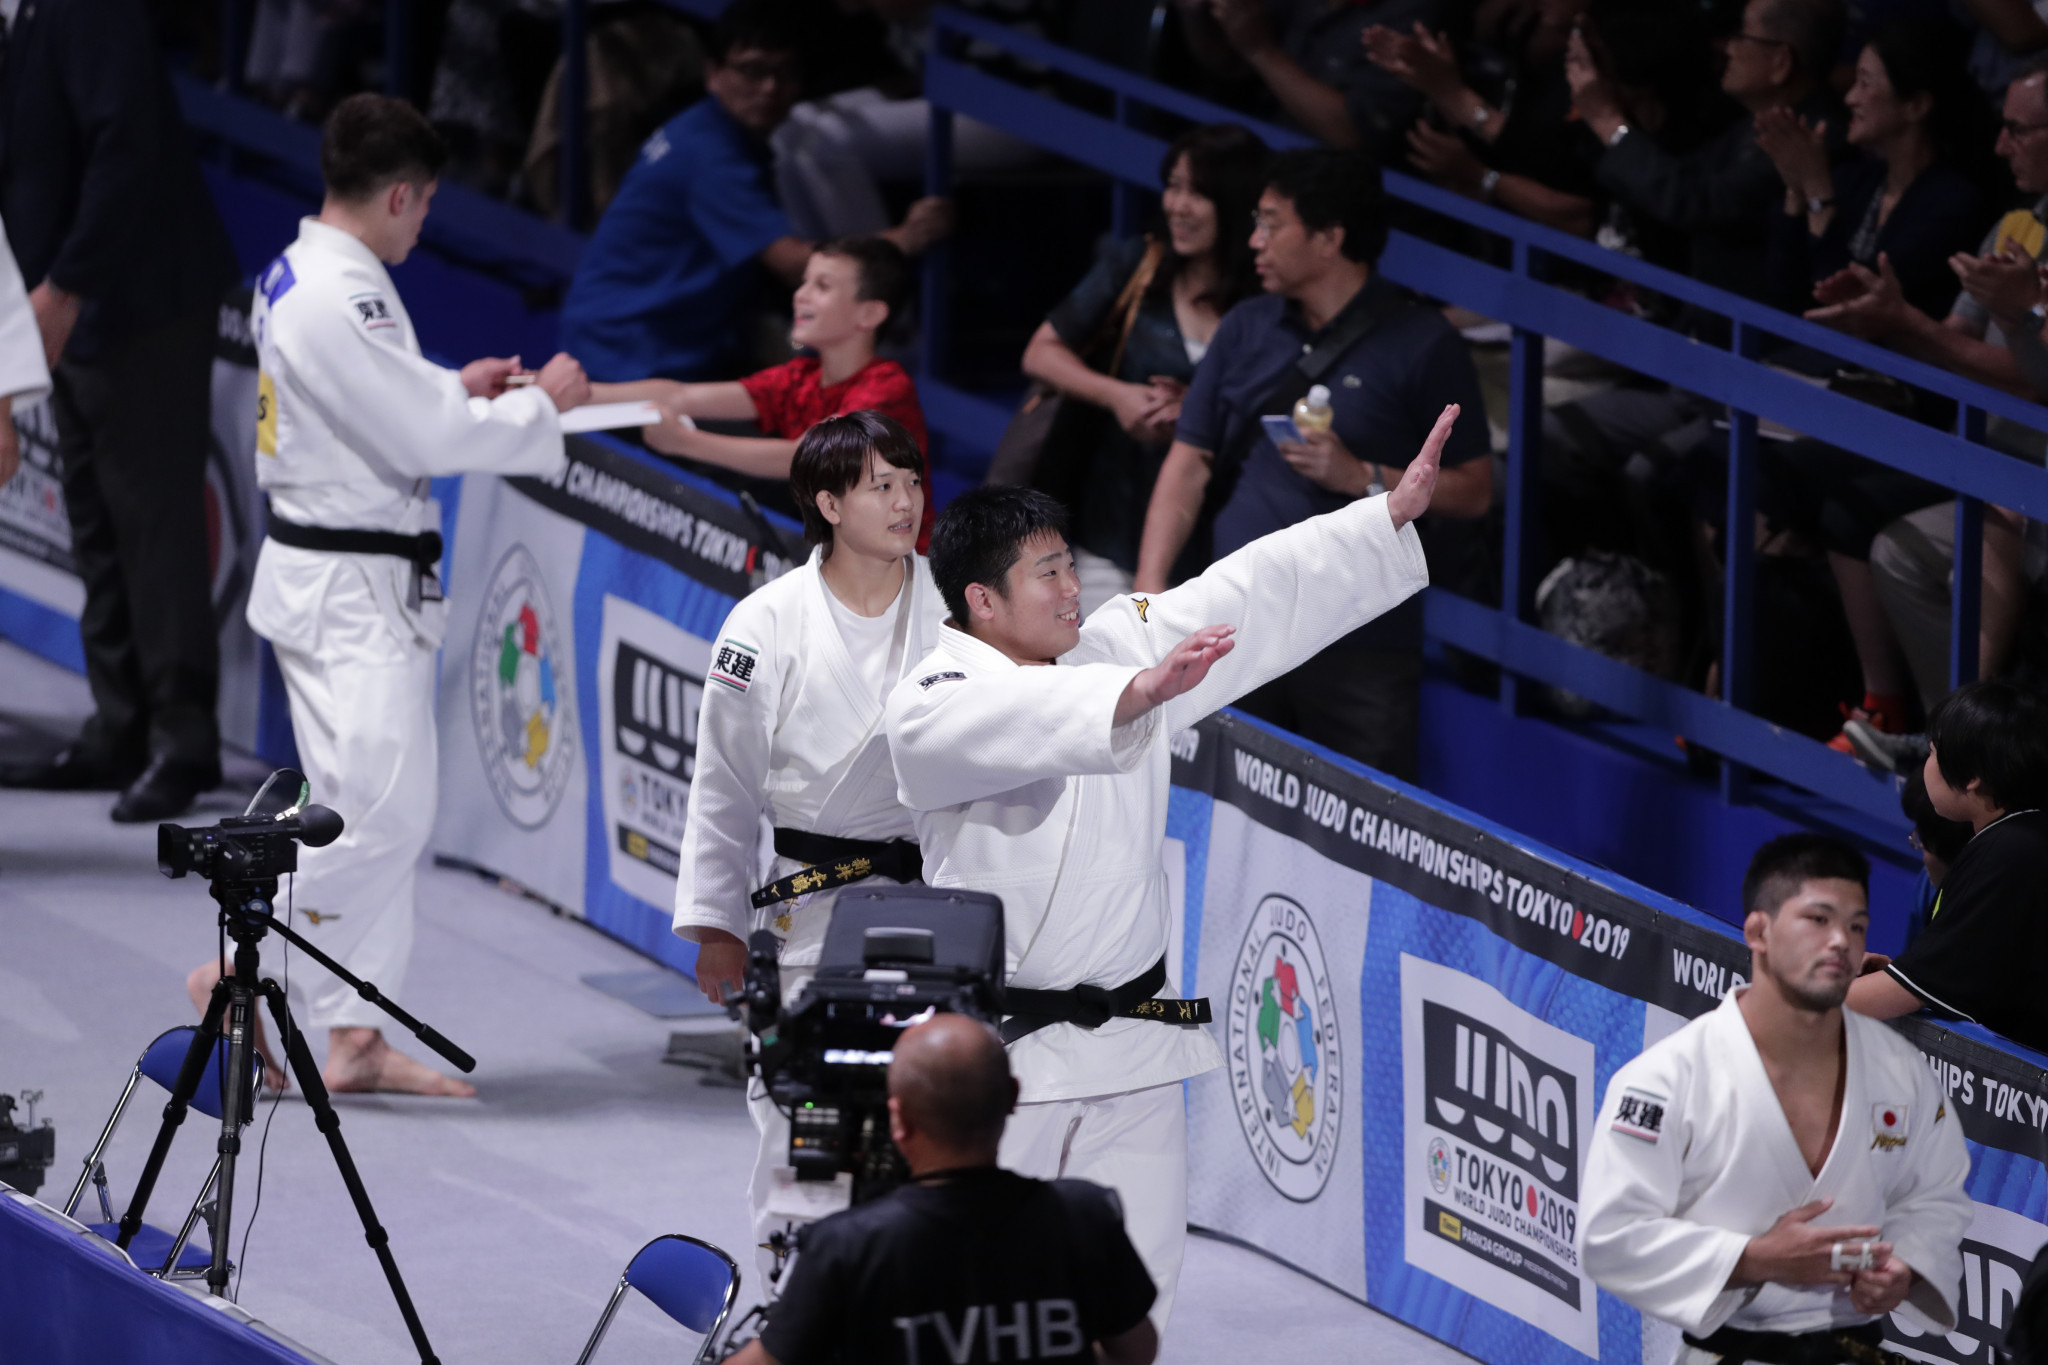 Japan's victory rounded off eight days of fierce competition at the Nippon Budokan in Tokyo ©Getty Images